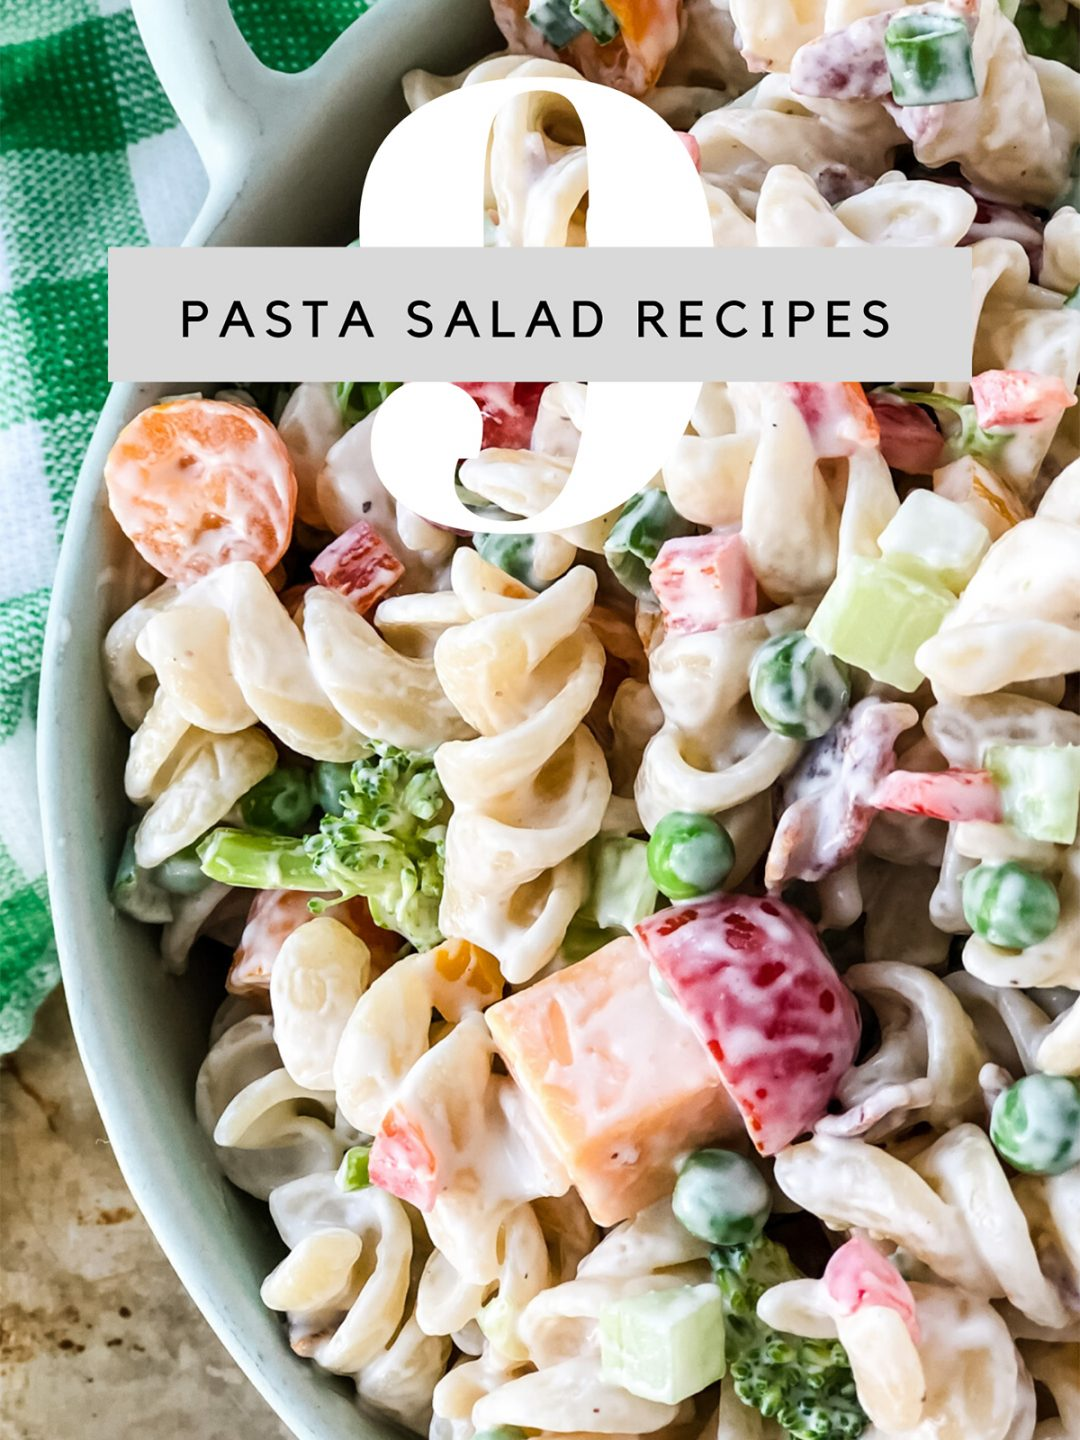 9+ Pasta Salad Recipes